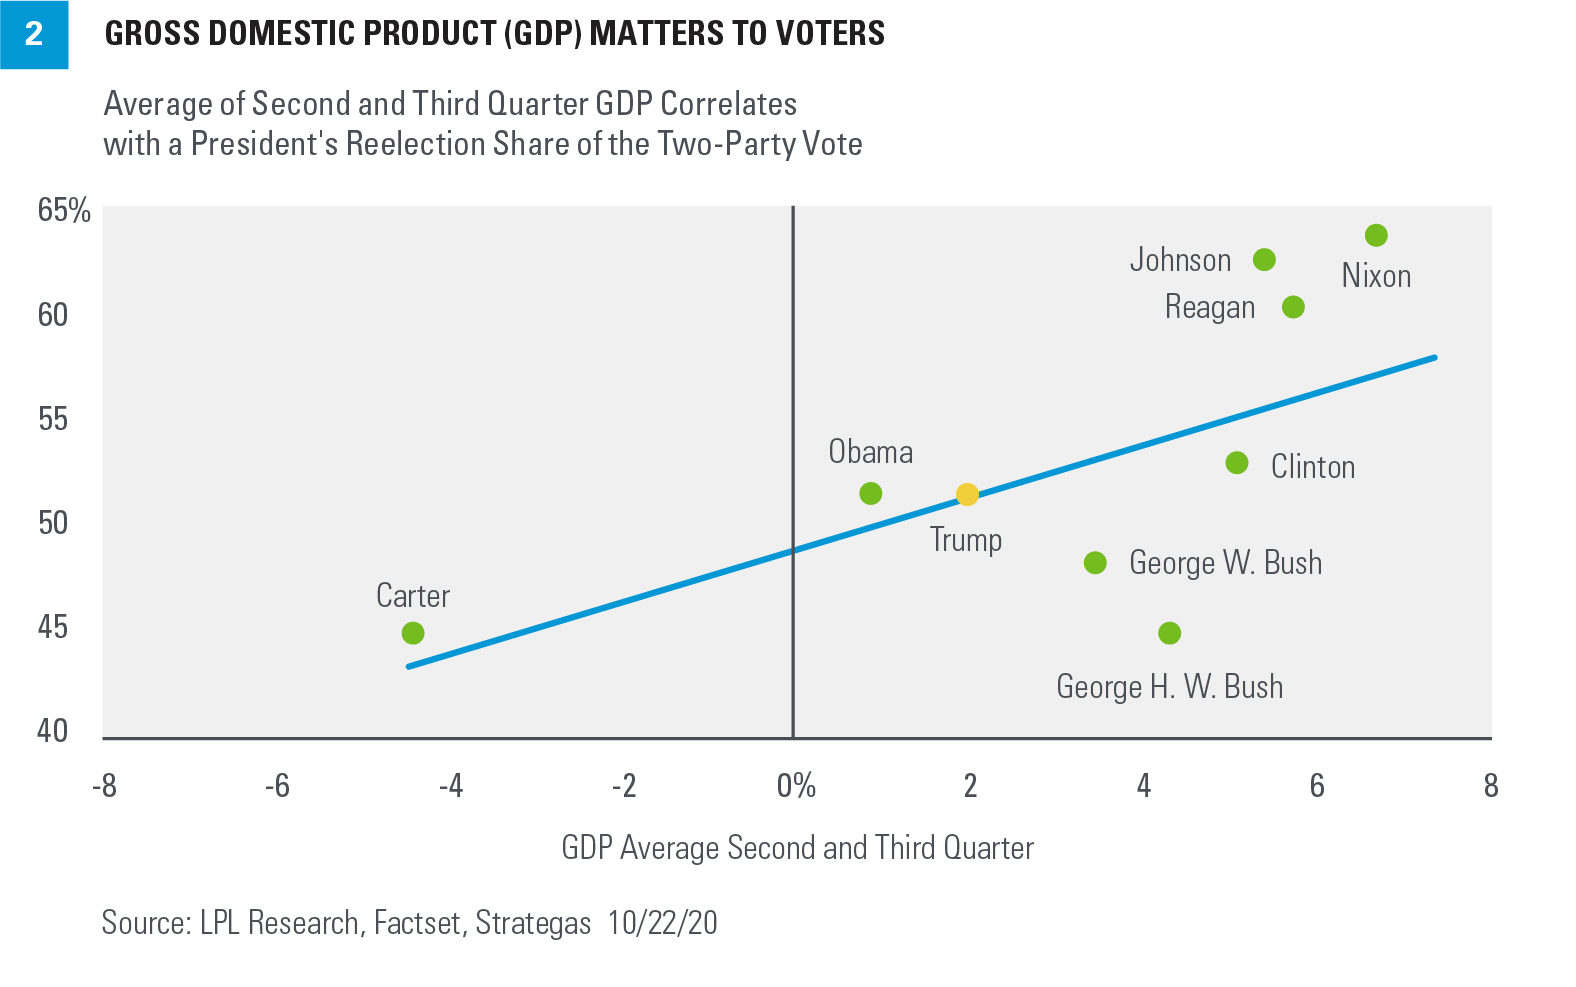 Chart - Gross Domestic Product (GDP) Matters to Voters